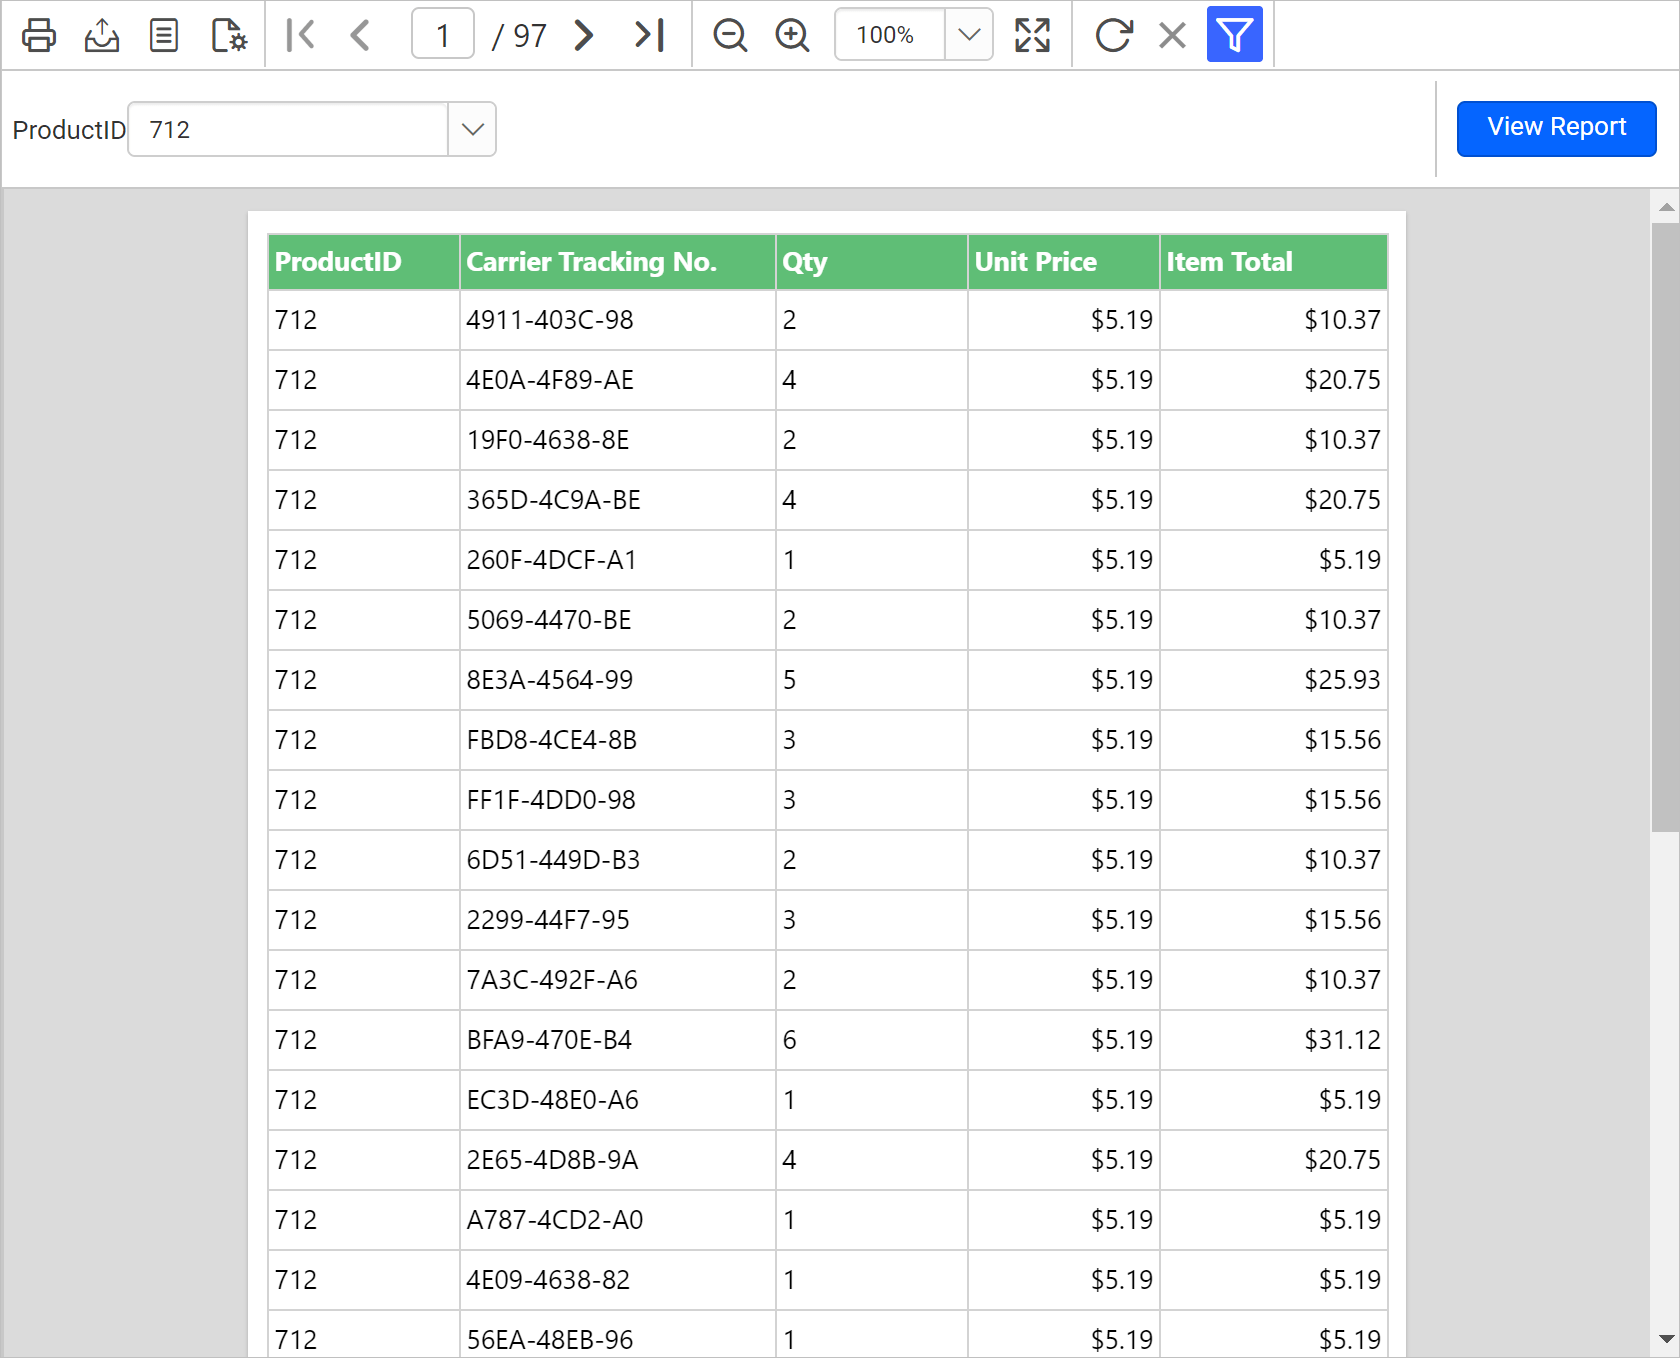 Filter product id values